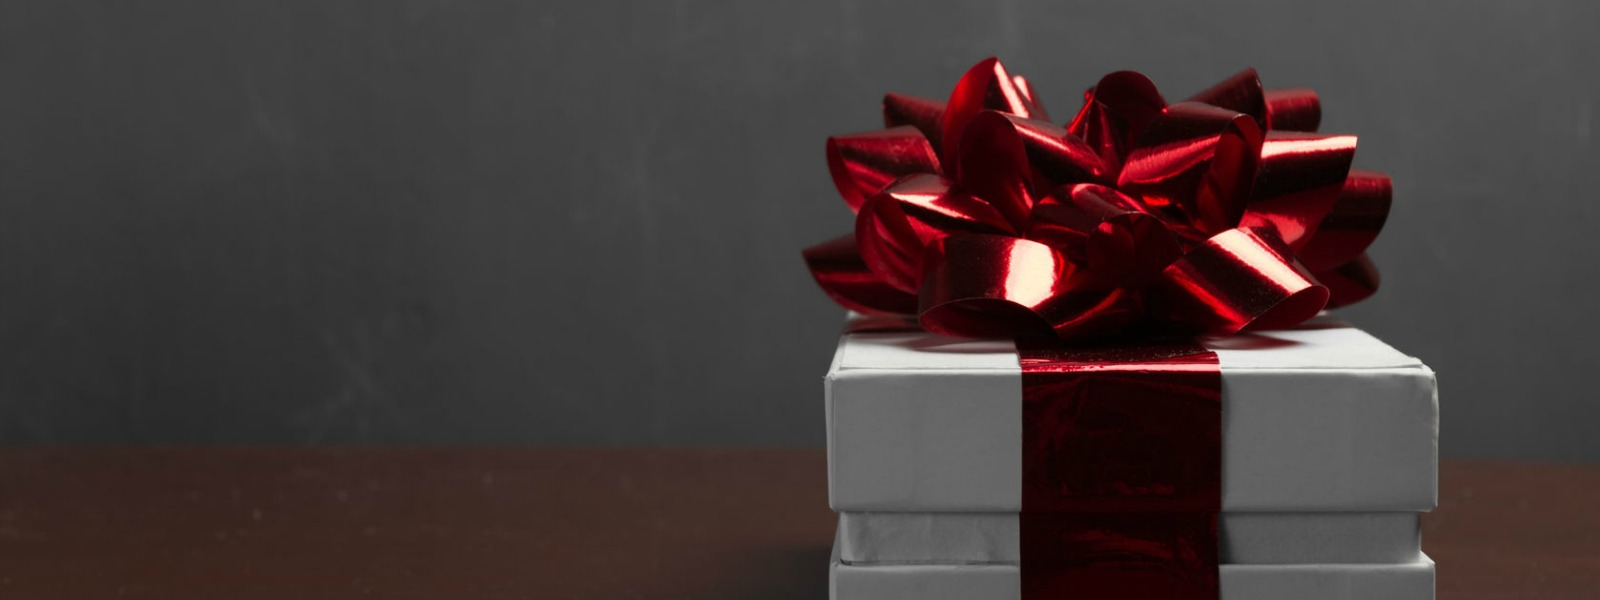 Men's Fashion Gifts: Top 10 Picks for the 2015 Holiday